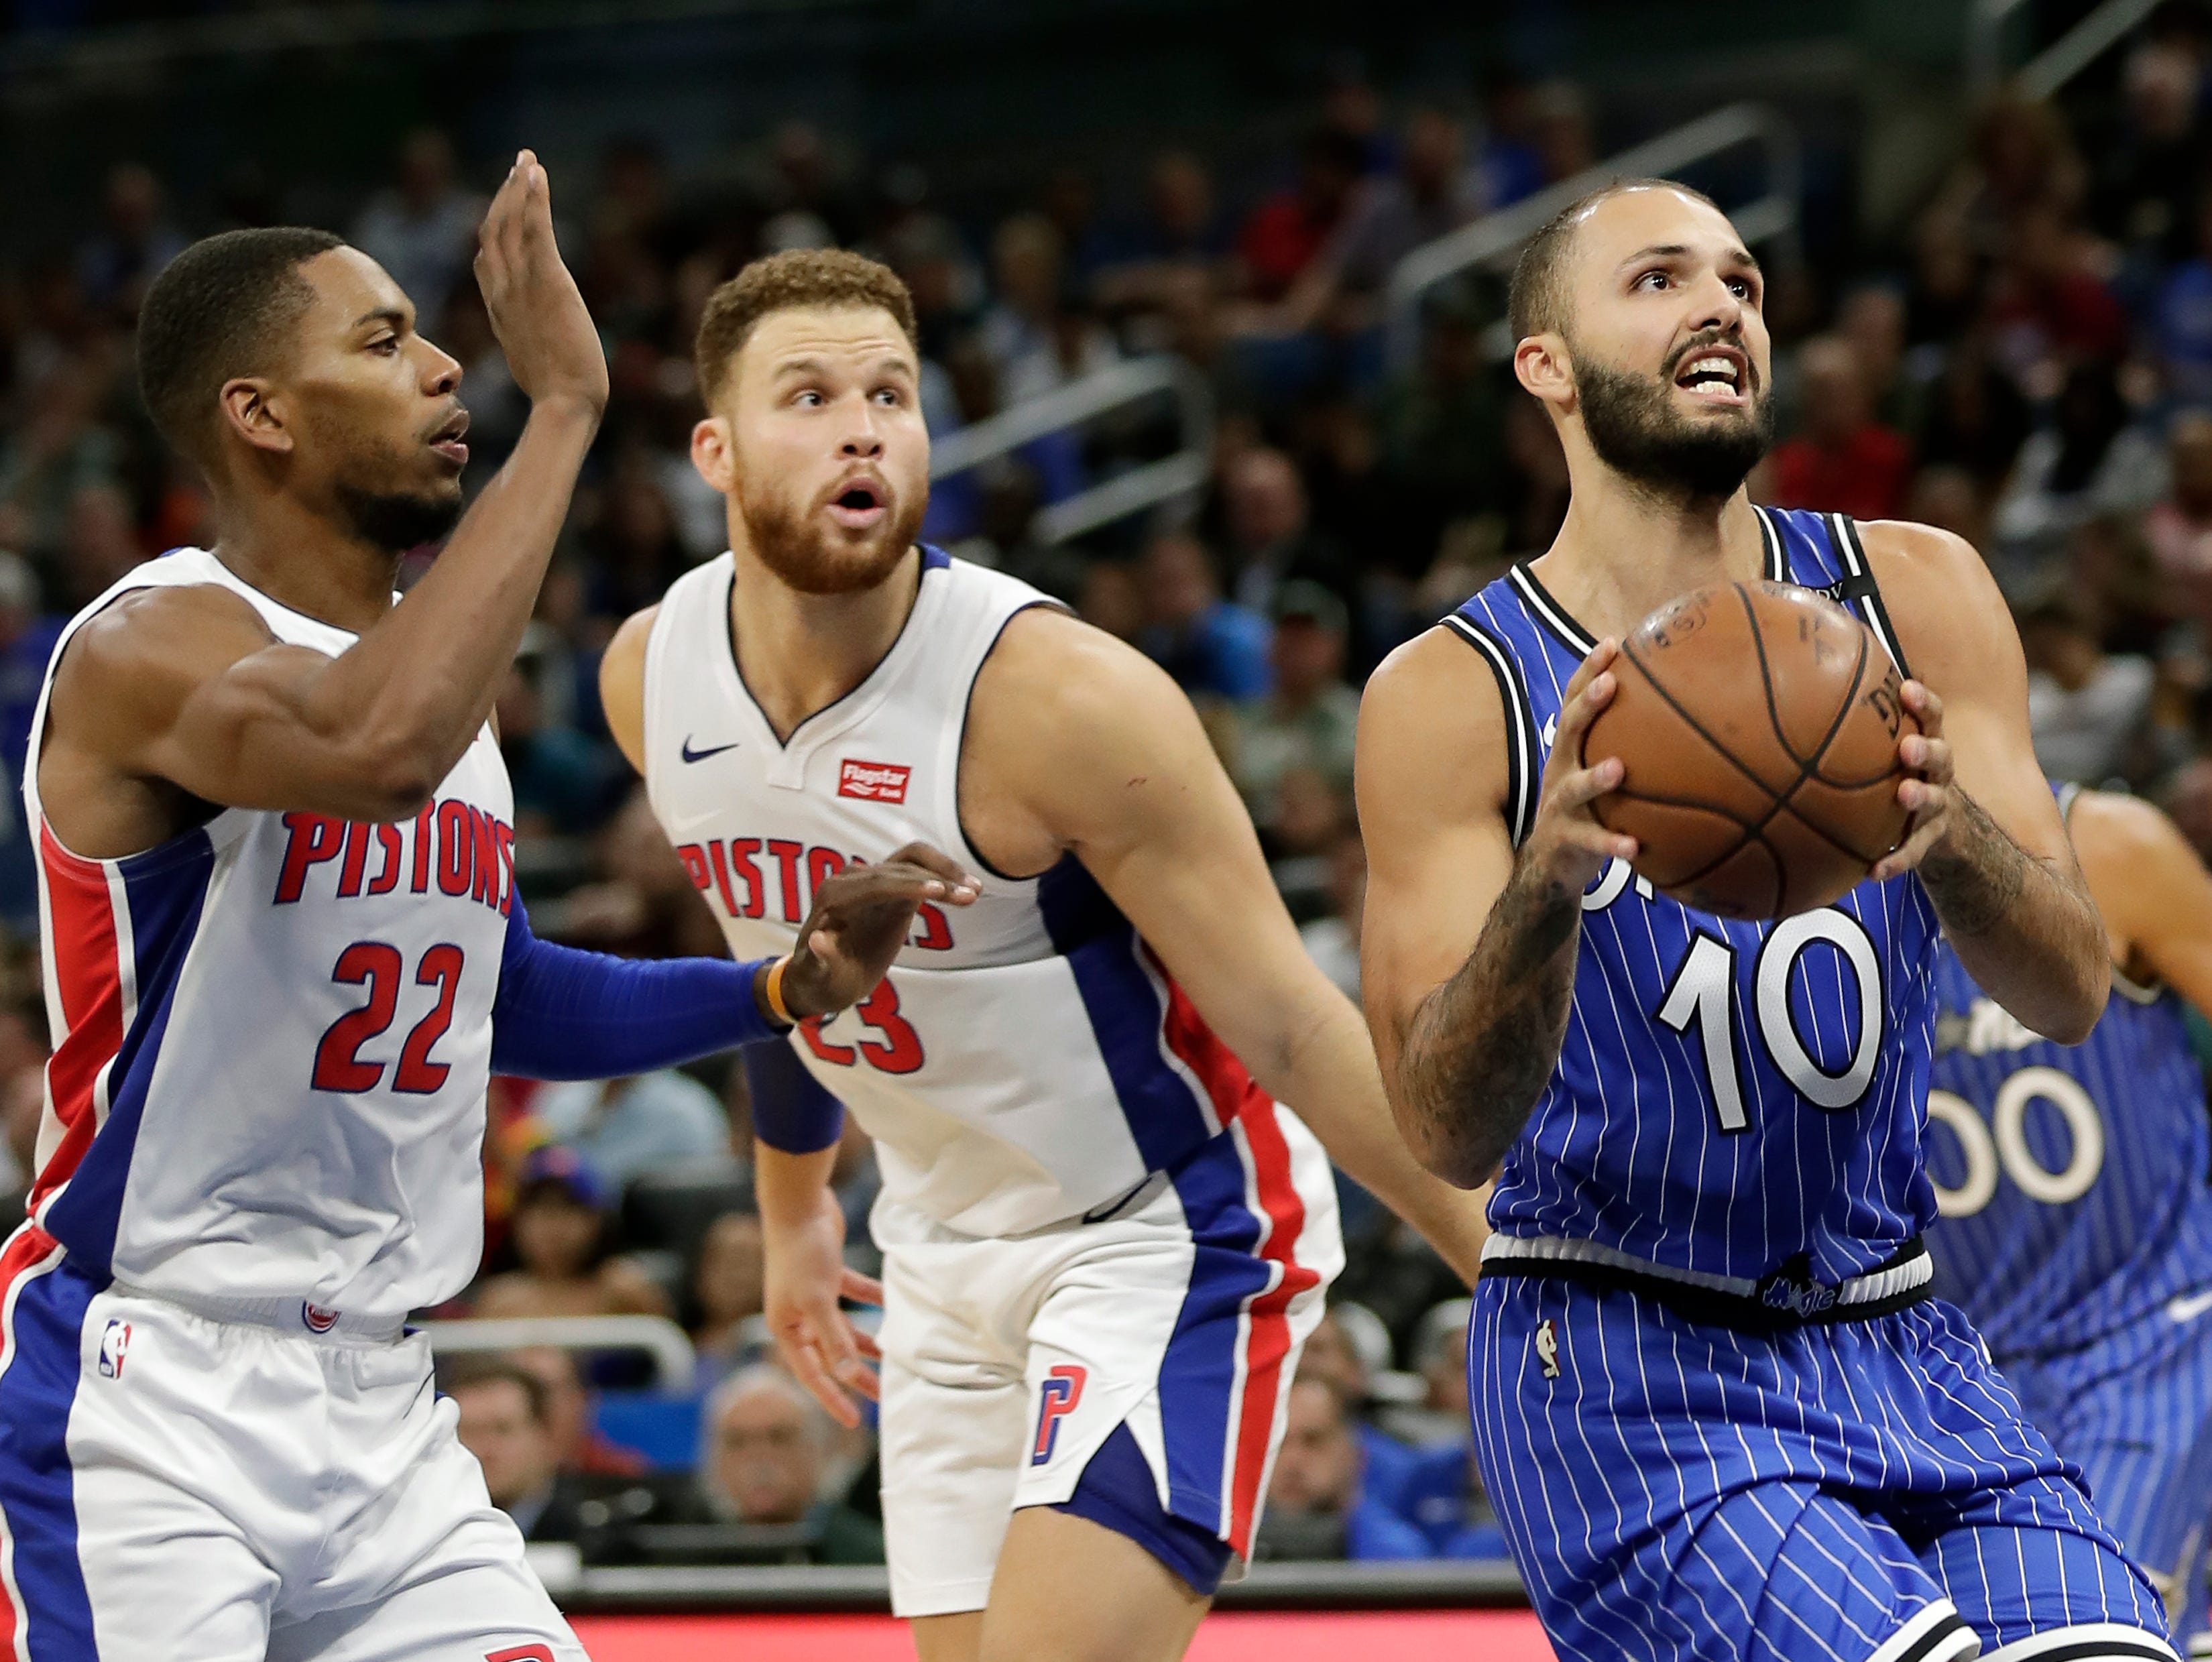 Orlando Magic's Evan Fournier (10) looks for a shot as he gets past Detroit Pistons' Glenn Robinson III (22) and Blake Griffin (23) during the first half of an NBA basketball game, Wednesday, Nov. 7, 2018, in Orlando, Fla.